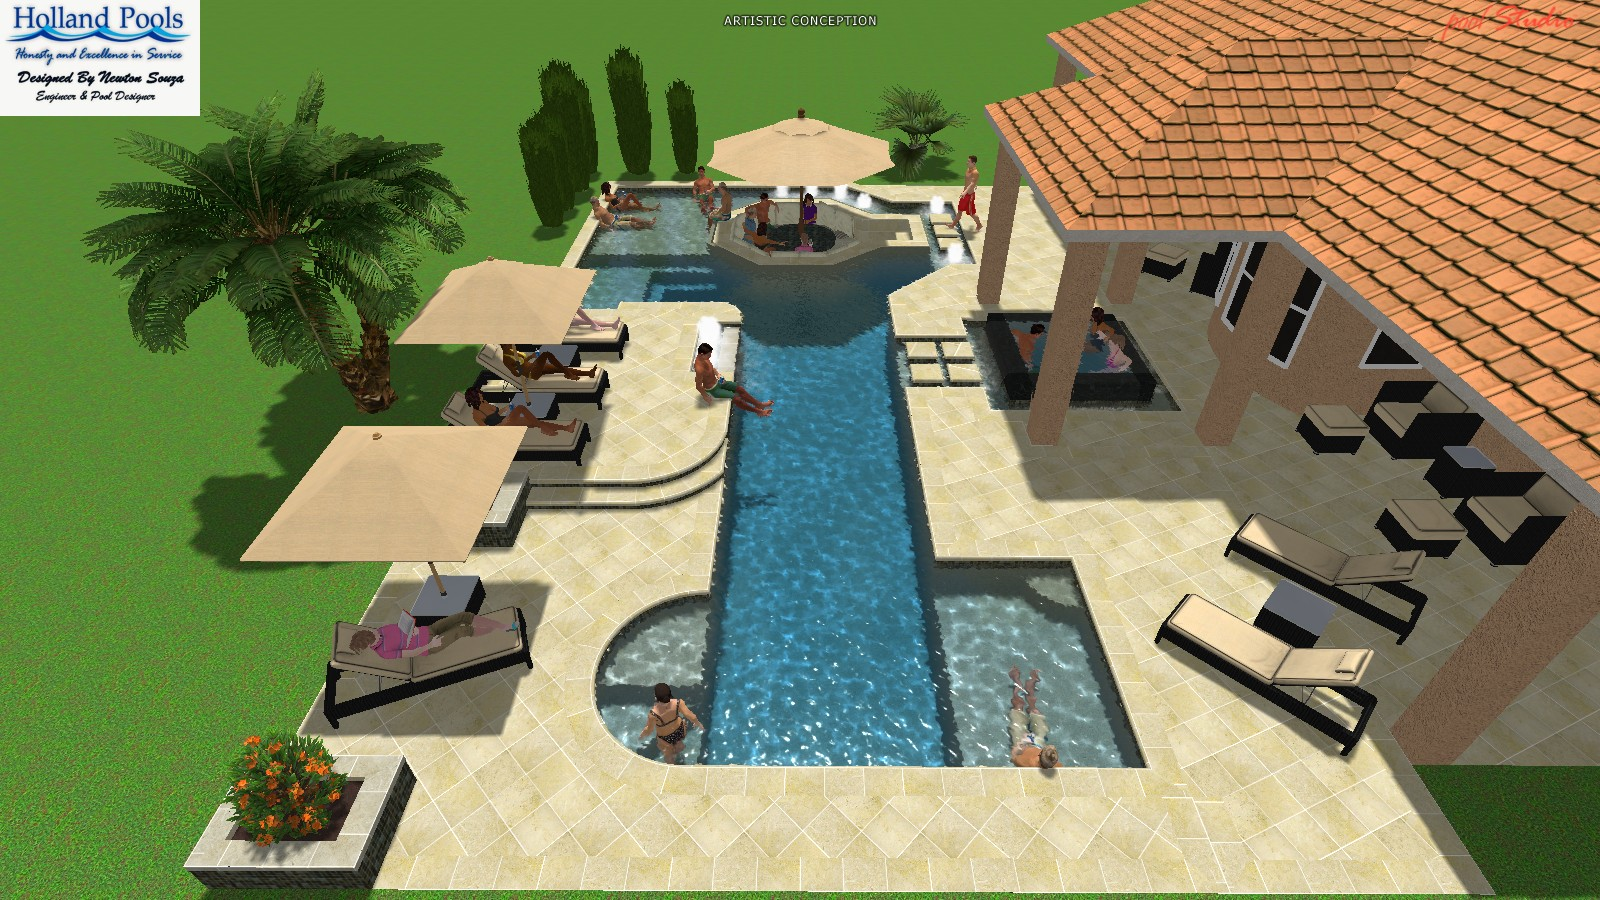 The Design Of A Pool Is Dictated By Its Function. The Homeowner Wants This  1000 Sq. Ft. Pool To Become Part Of His Fitness Routine So Its Design Spans  80 ...